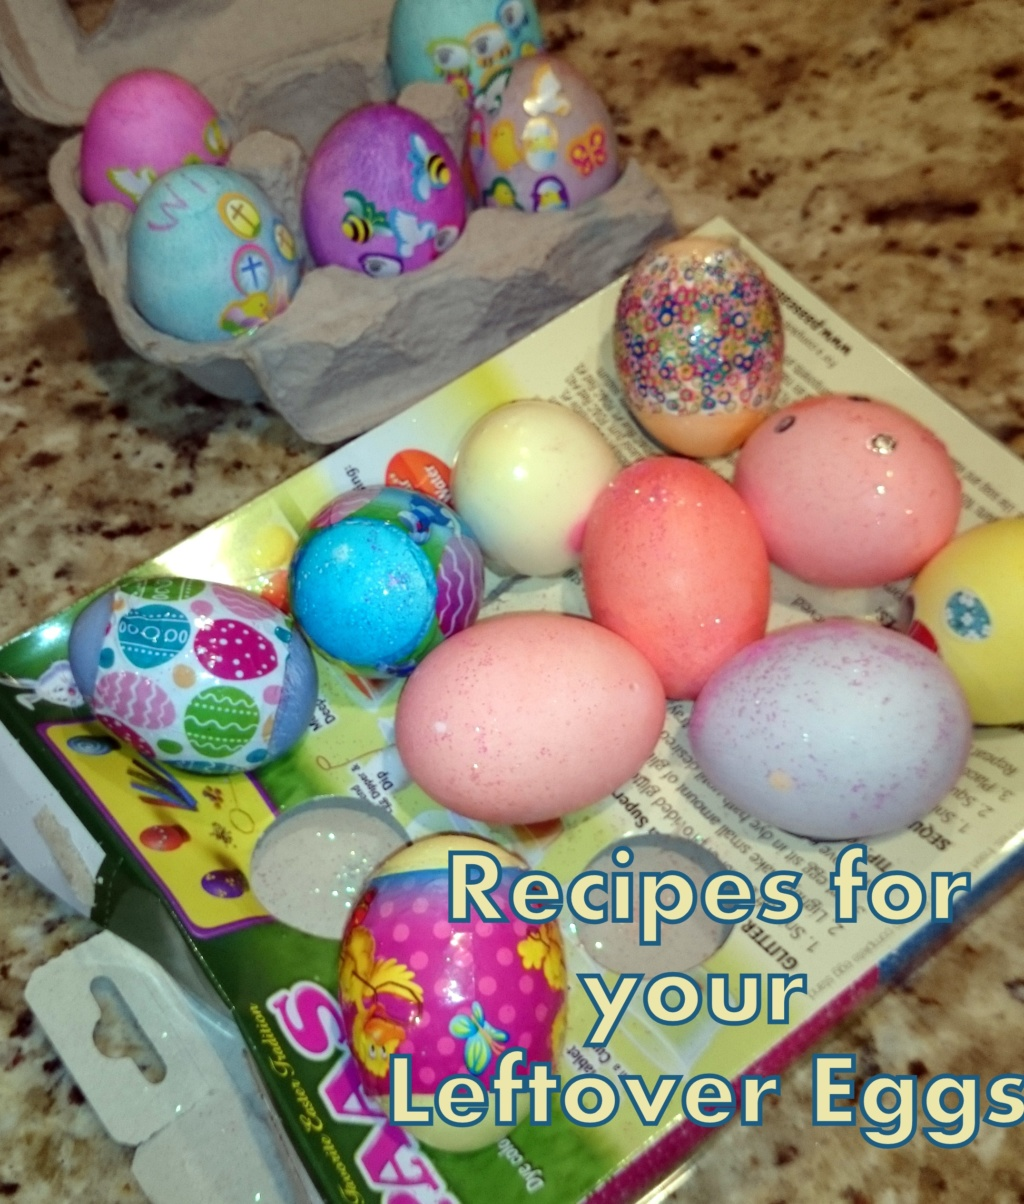 Got Leftover Easter Eggs?